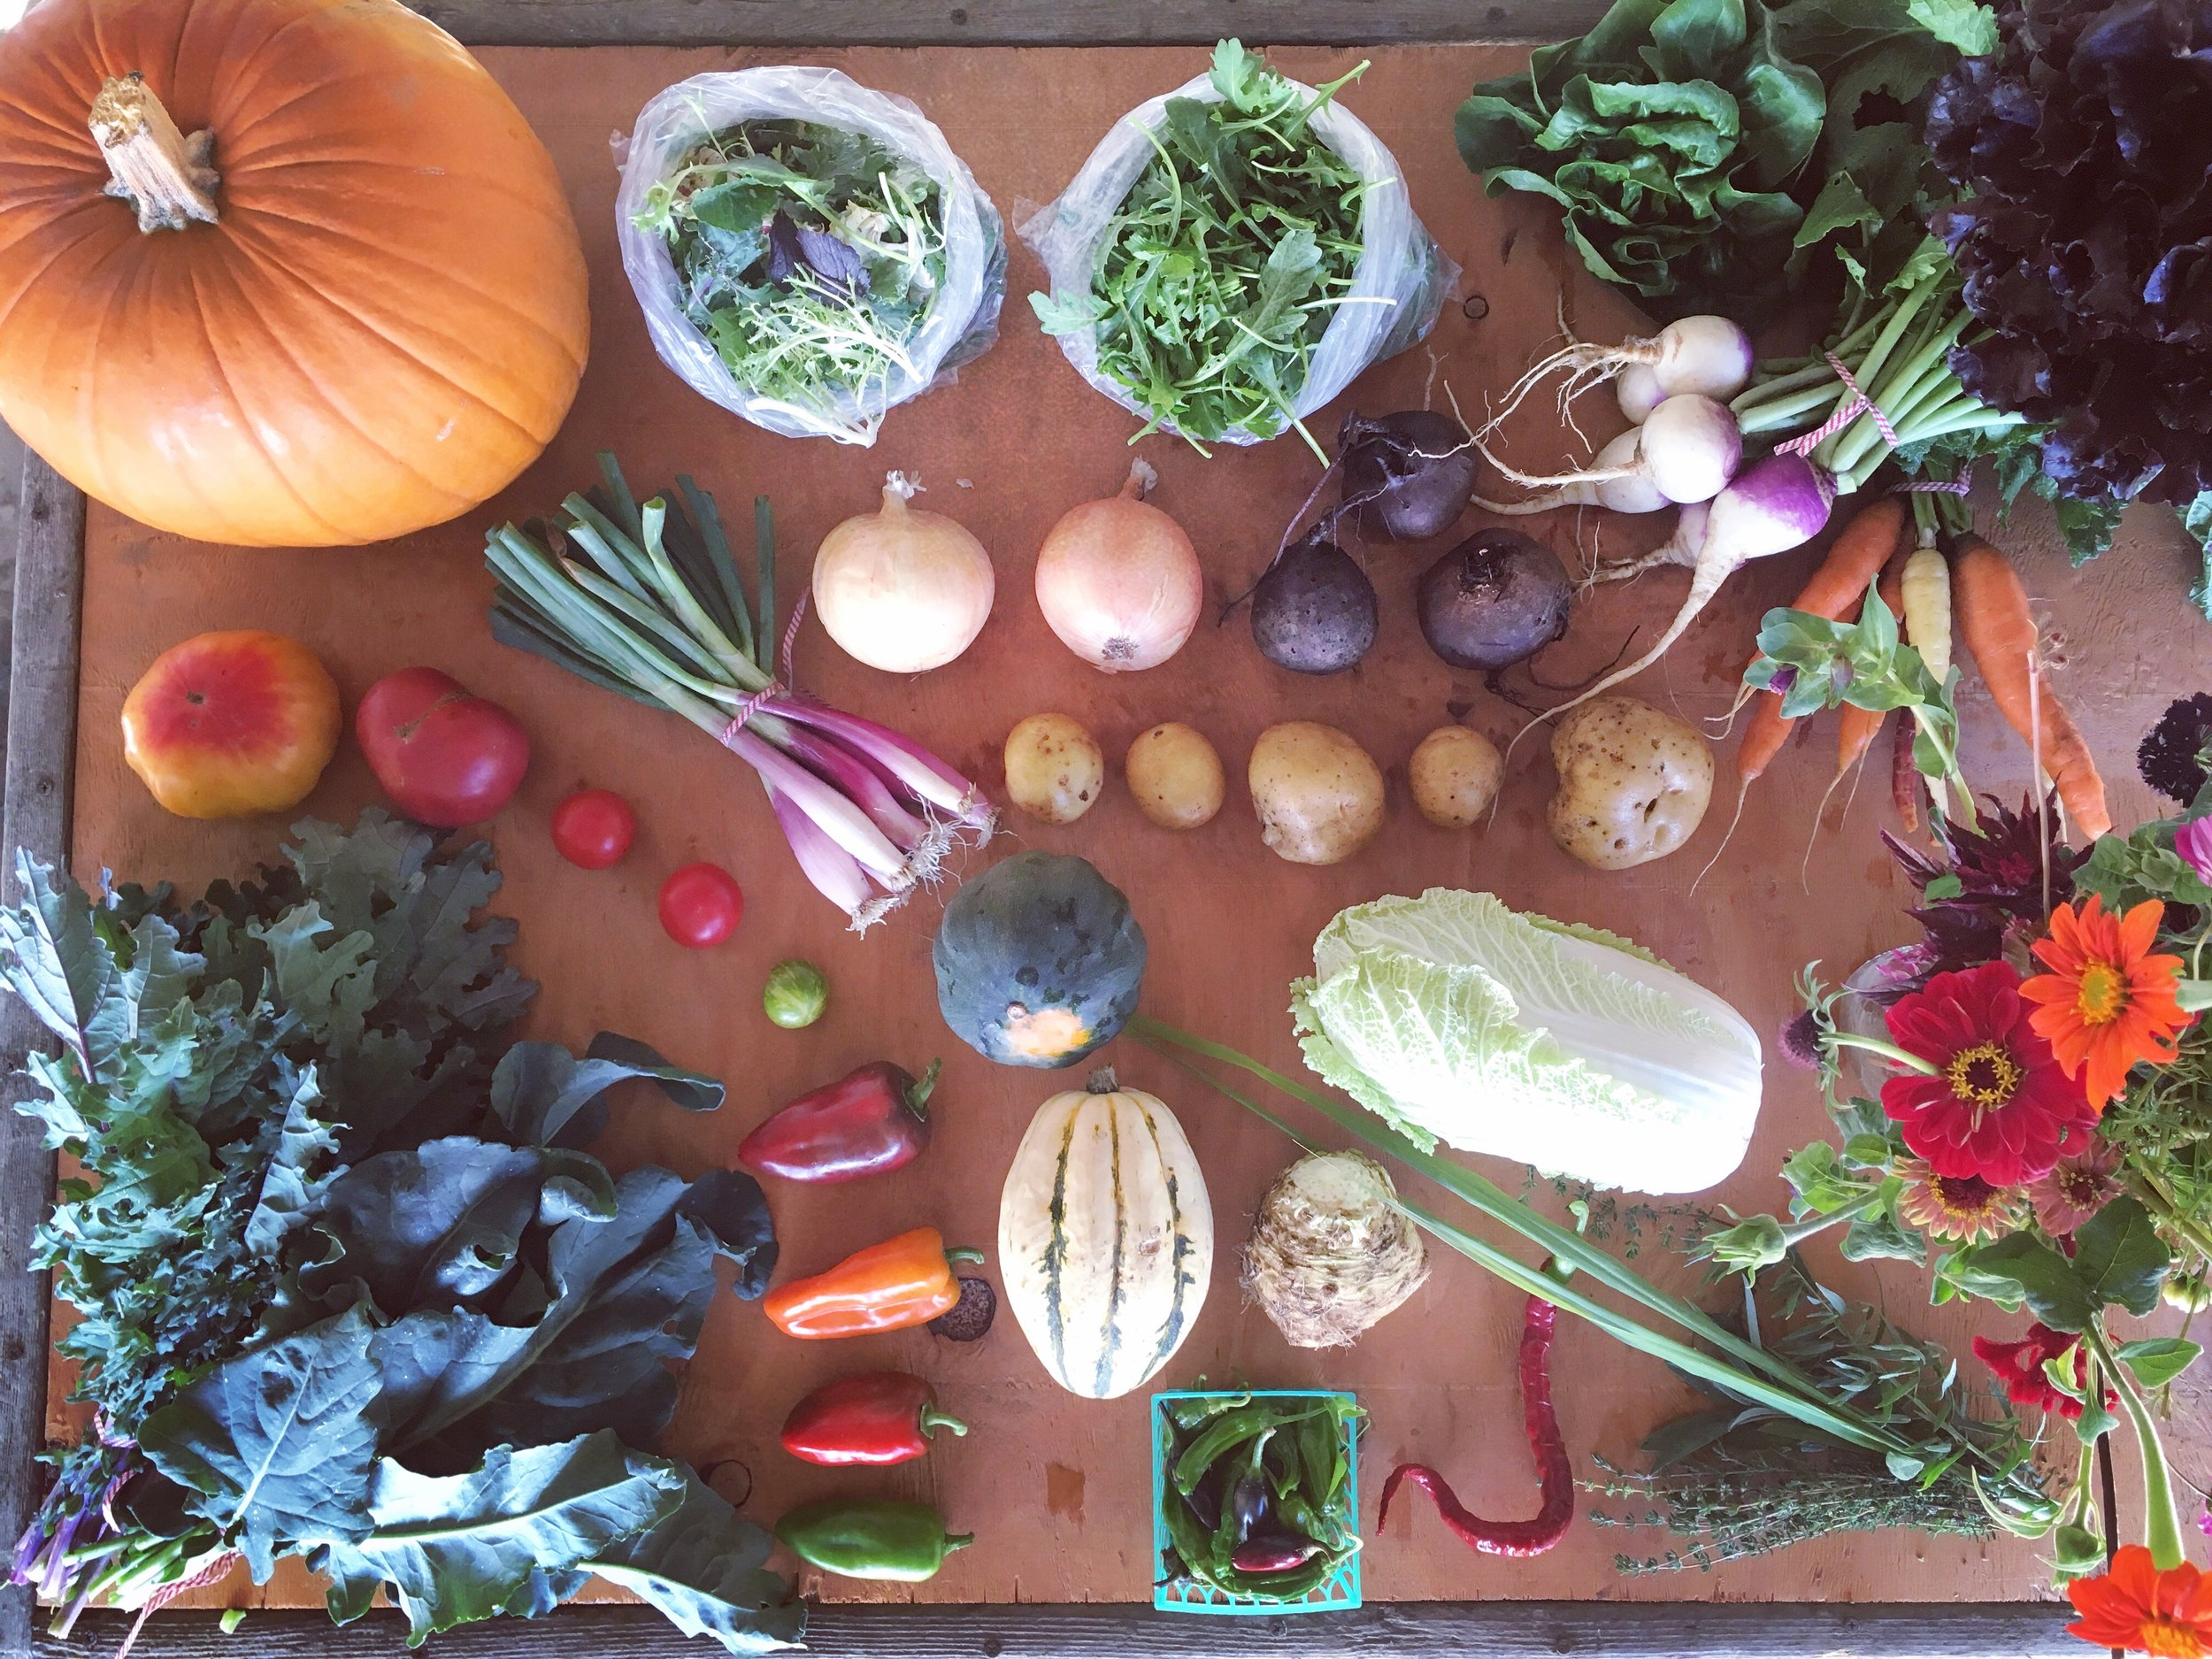 COST COMPARISON : At Farmer's Market rates, the sample share above, from late October 2017, contains $80.50 of produce ($53.50 worth of pre-harvested produce and $27 worth of u-pick crops, flowers, and herbs). If a two-adult, one bag share is $38.50 per week, that's $42 of savings!